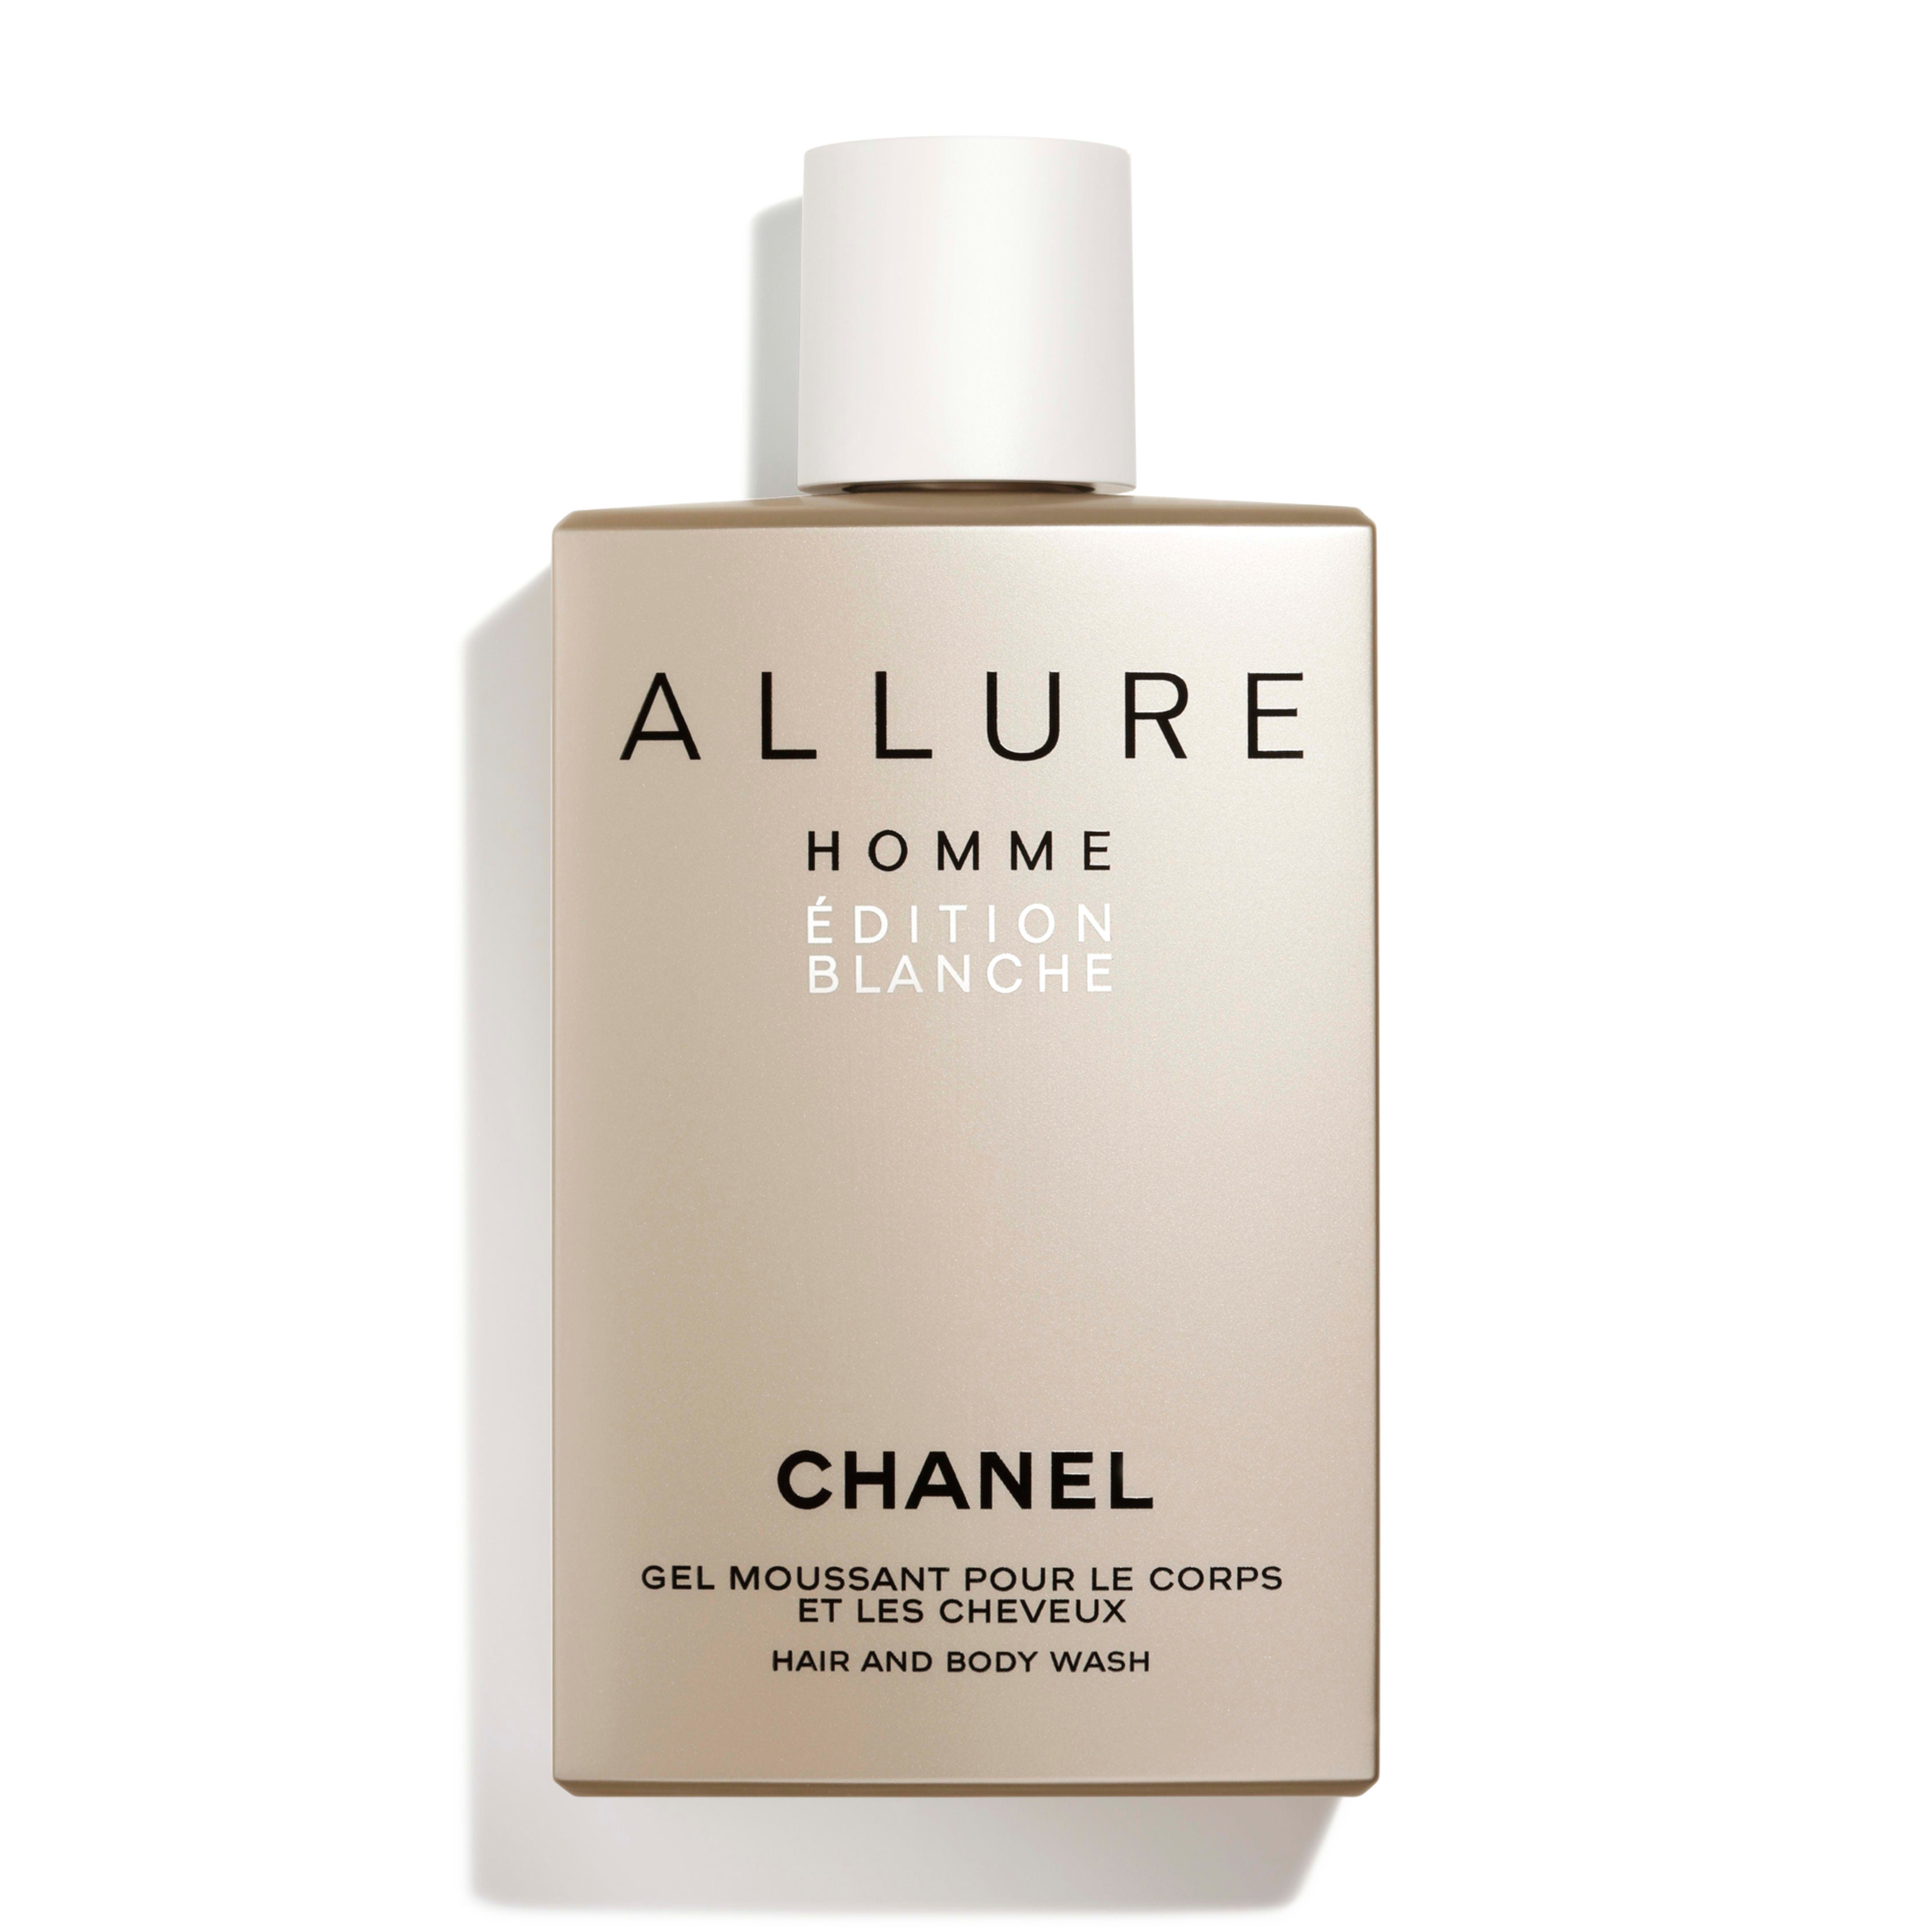 167d18bd Chanel ALLURE HOMME ÉDITION BLANCHE Shower gel (hair & body wash)